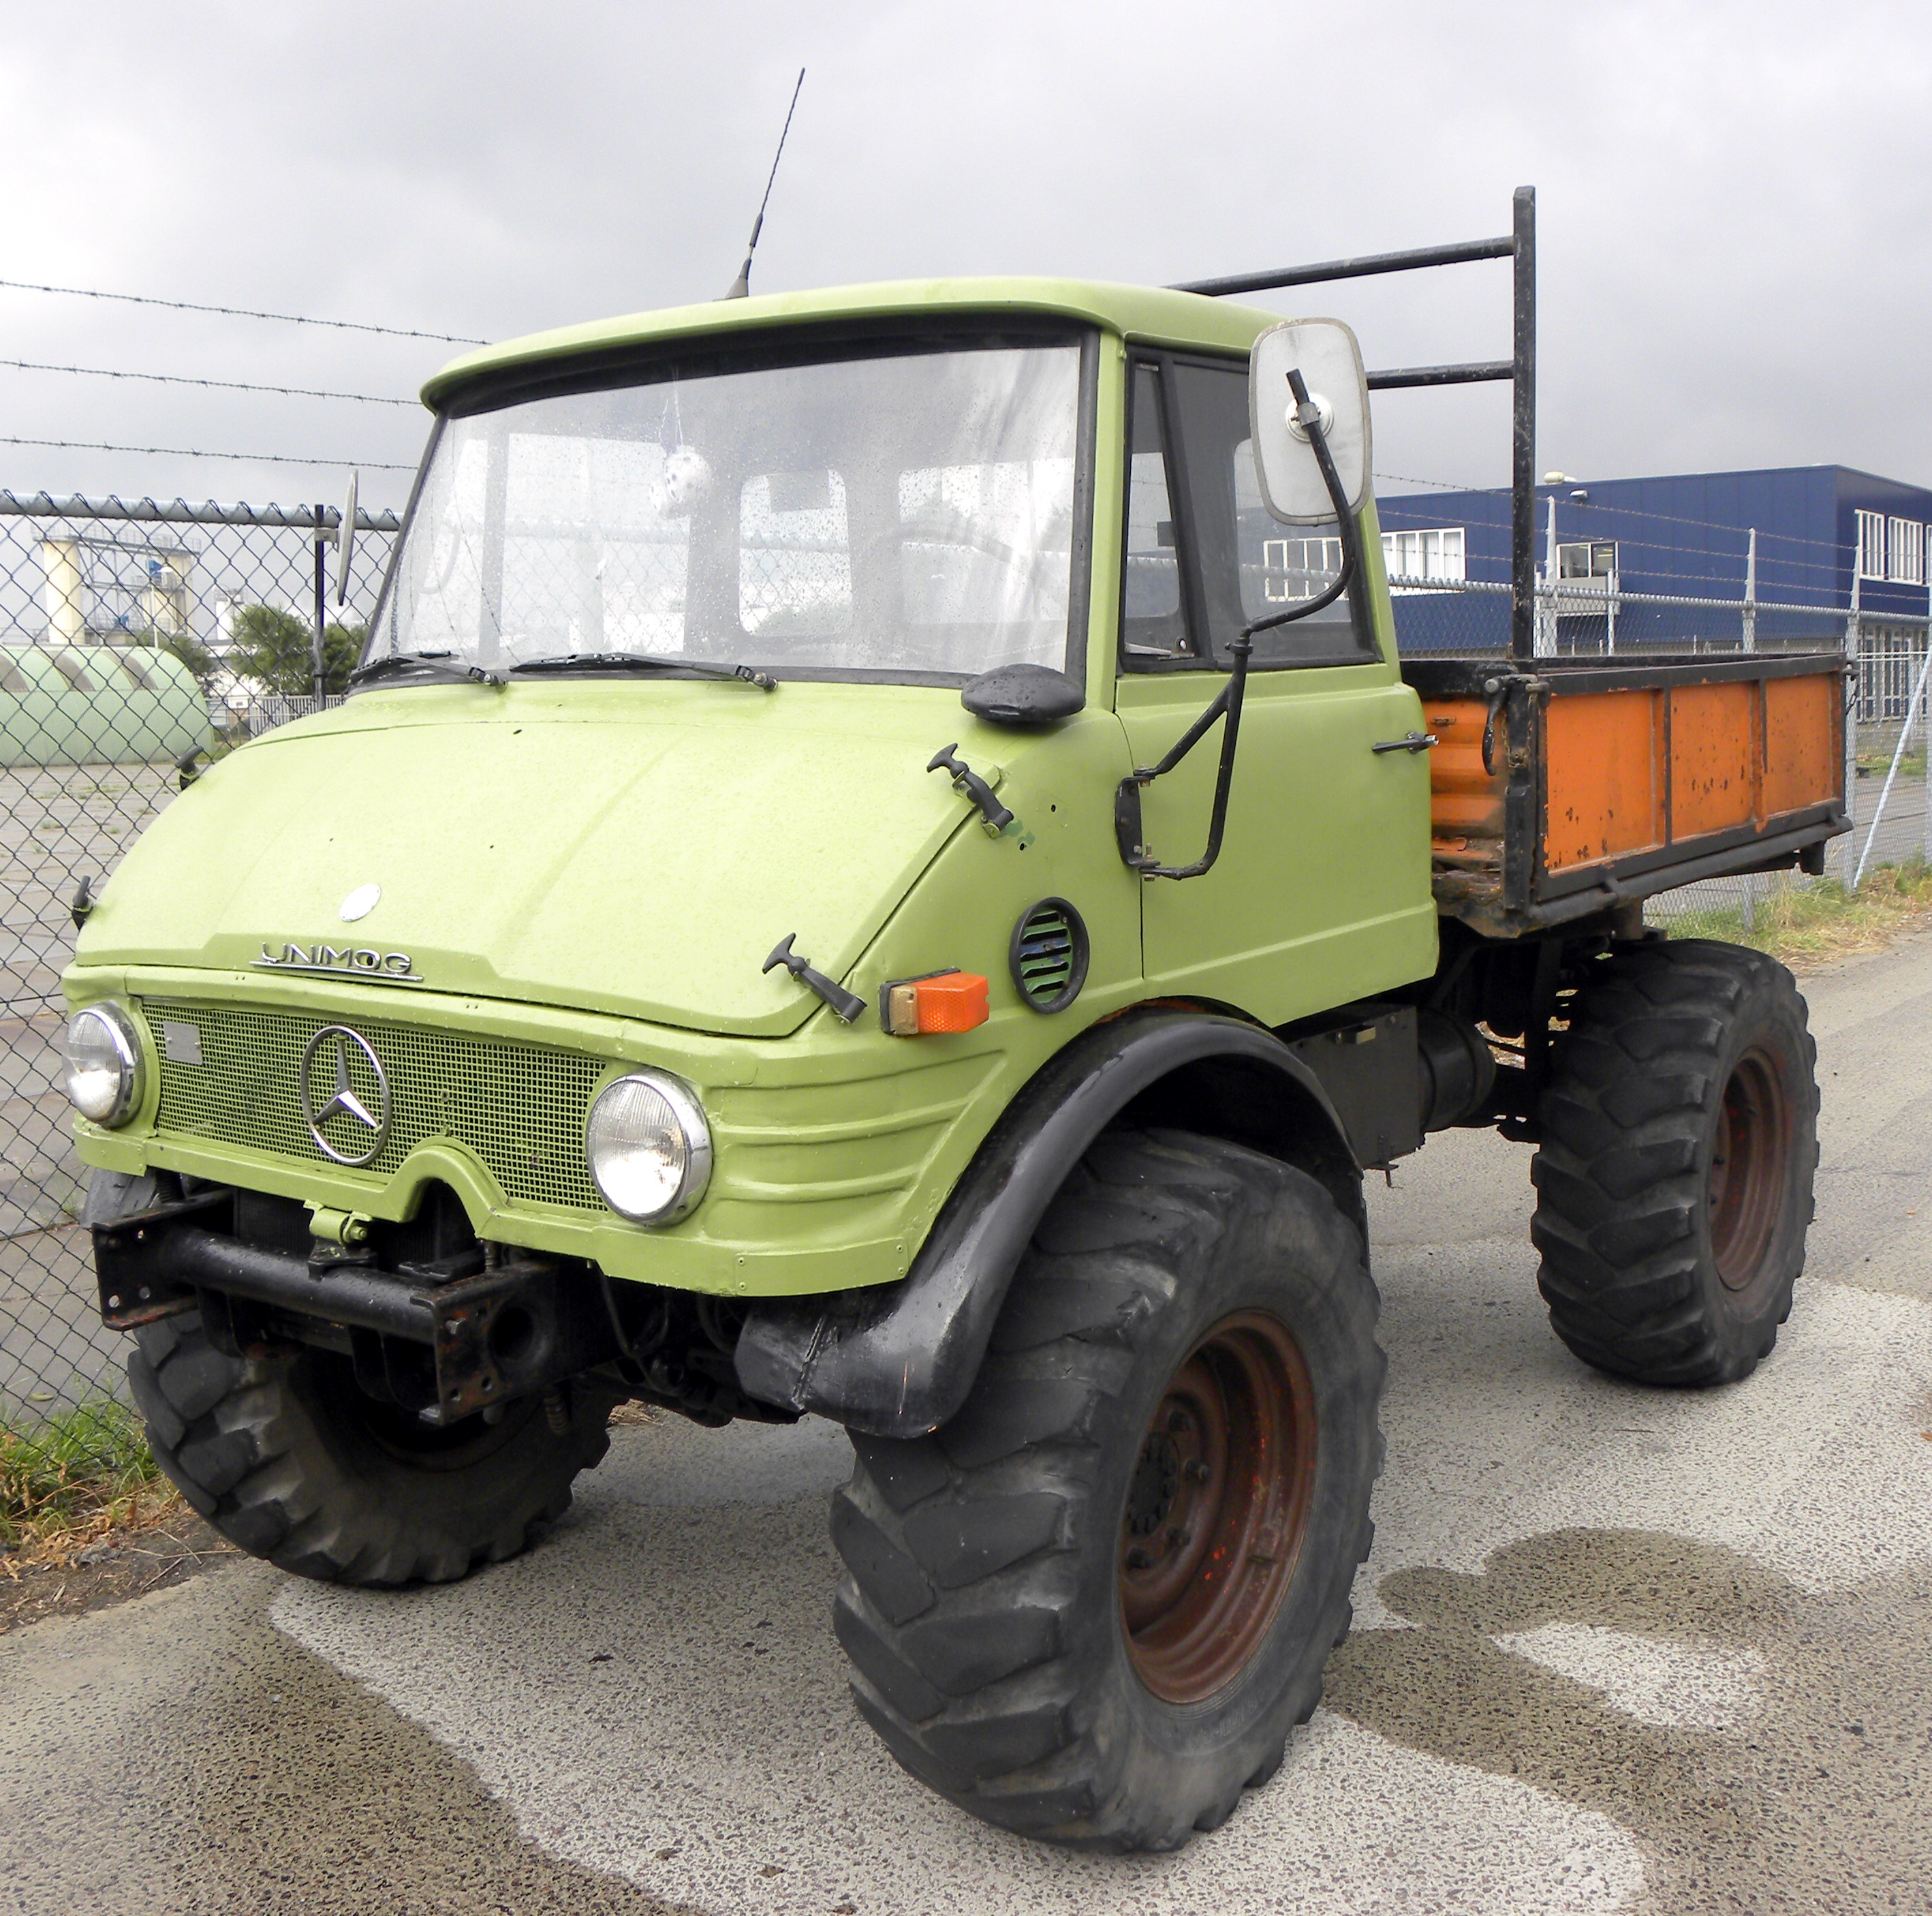 Unimog For Sale >> File:Unimog 406 (1).jpg - Wikimedia Commons